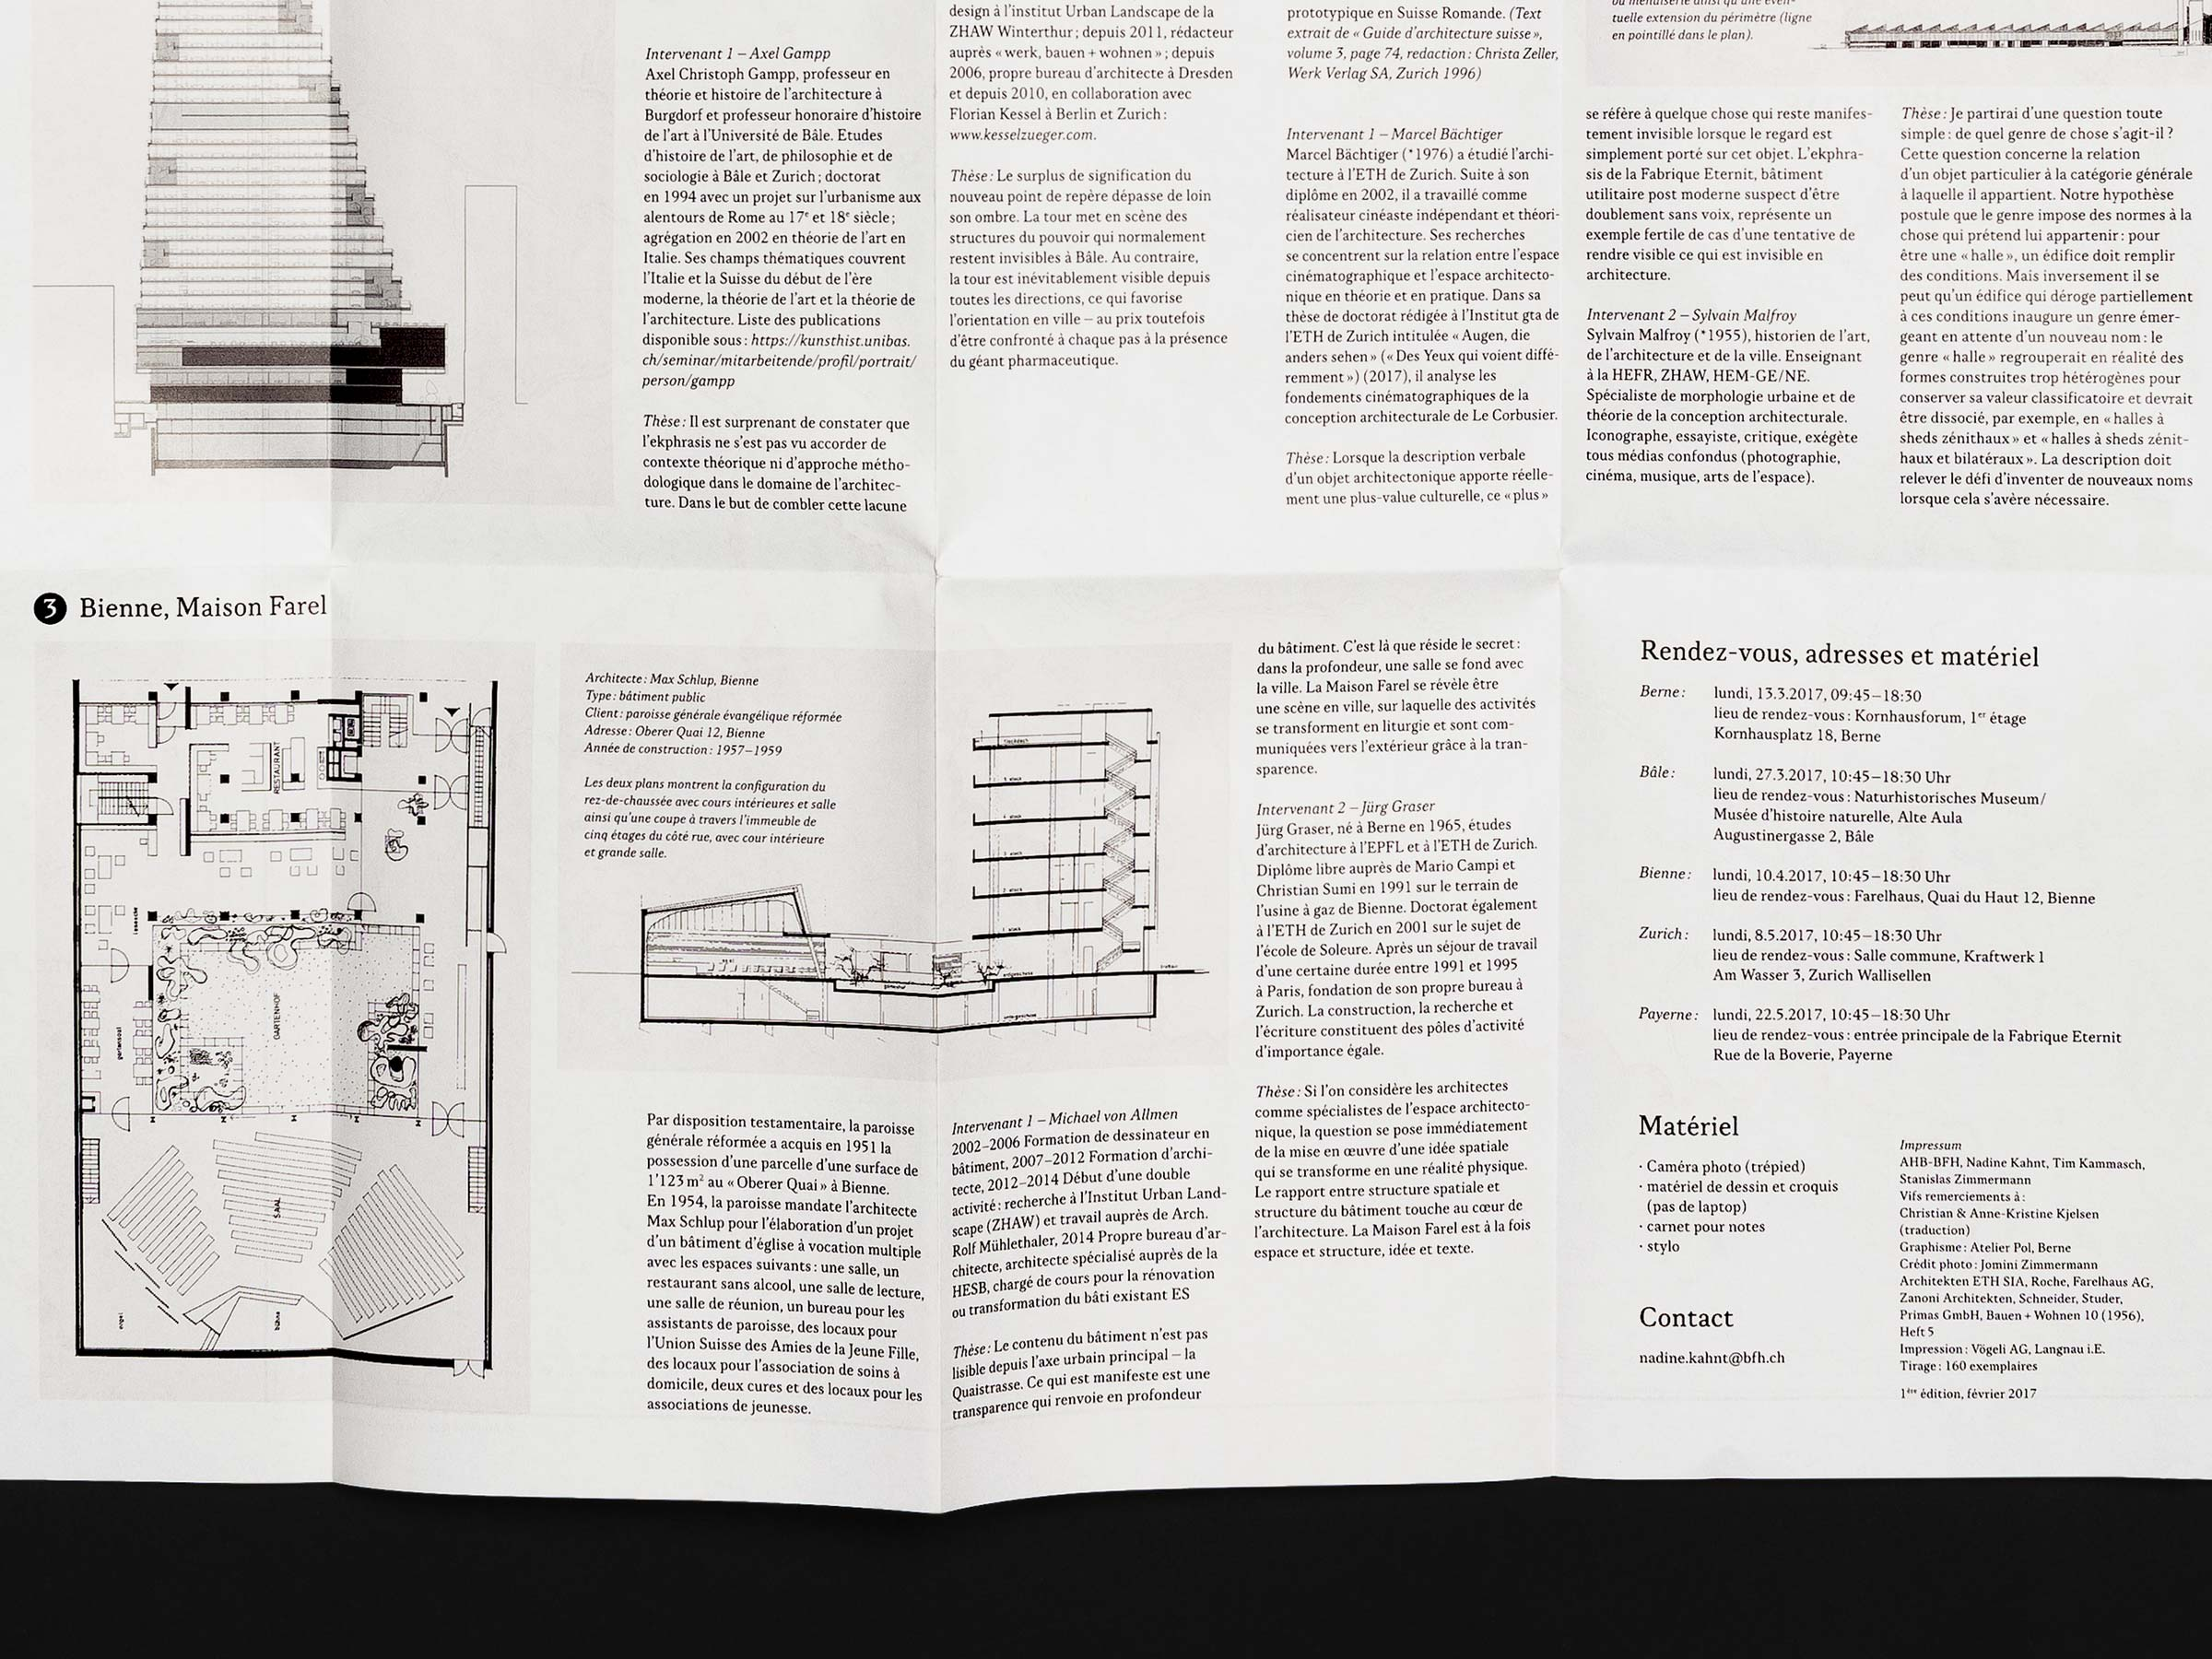 Berner Fachhochschule – Joint Master in Architecture - map, detail 02 ©Atelier Pol × Barbara Hess